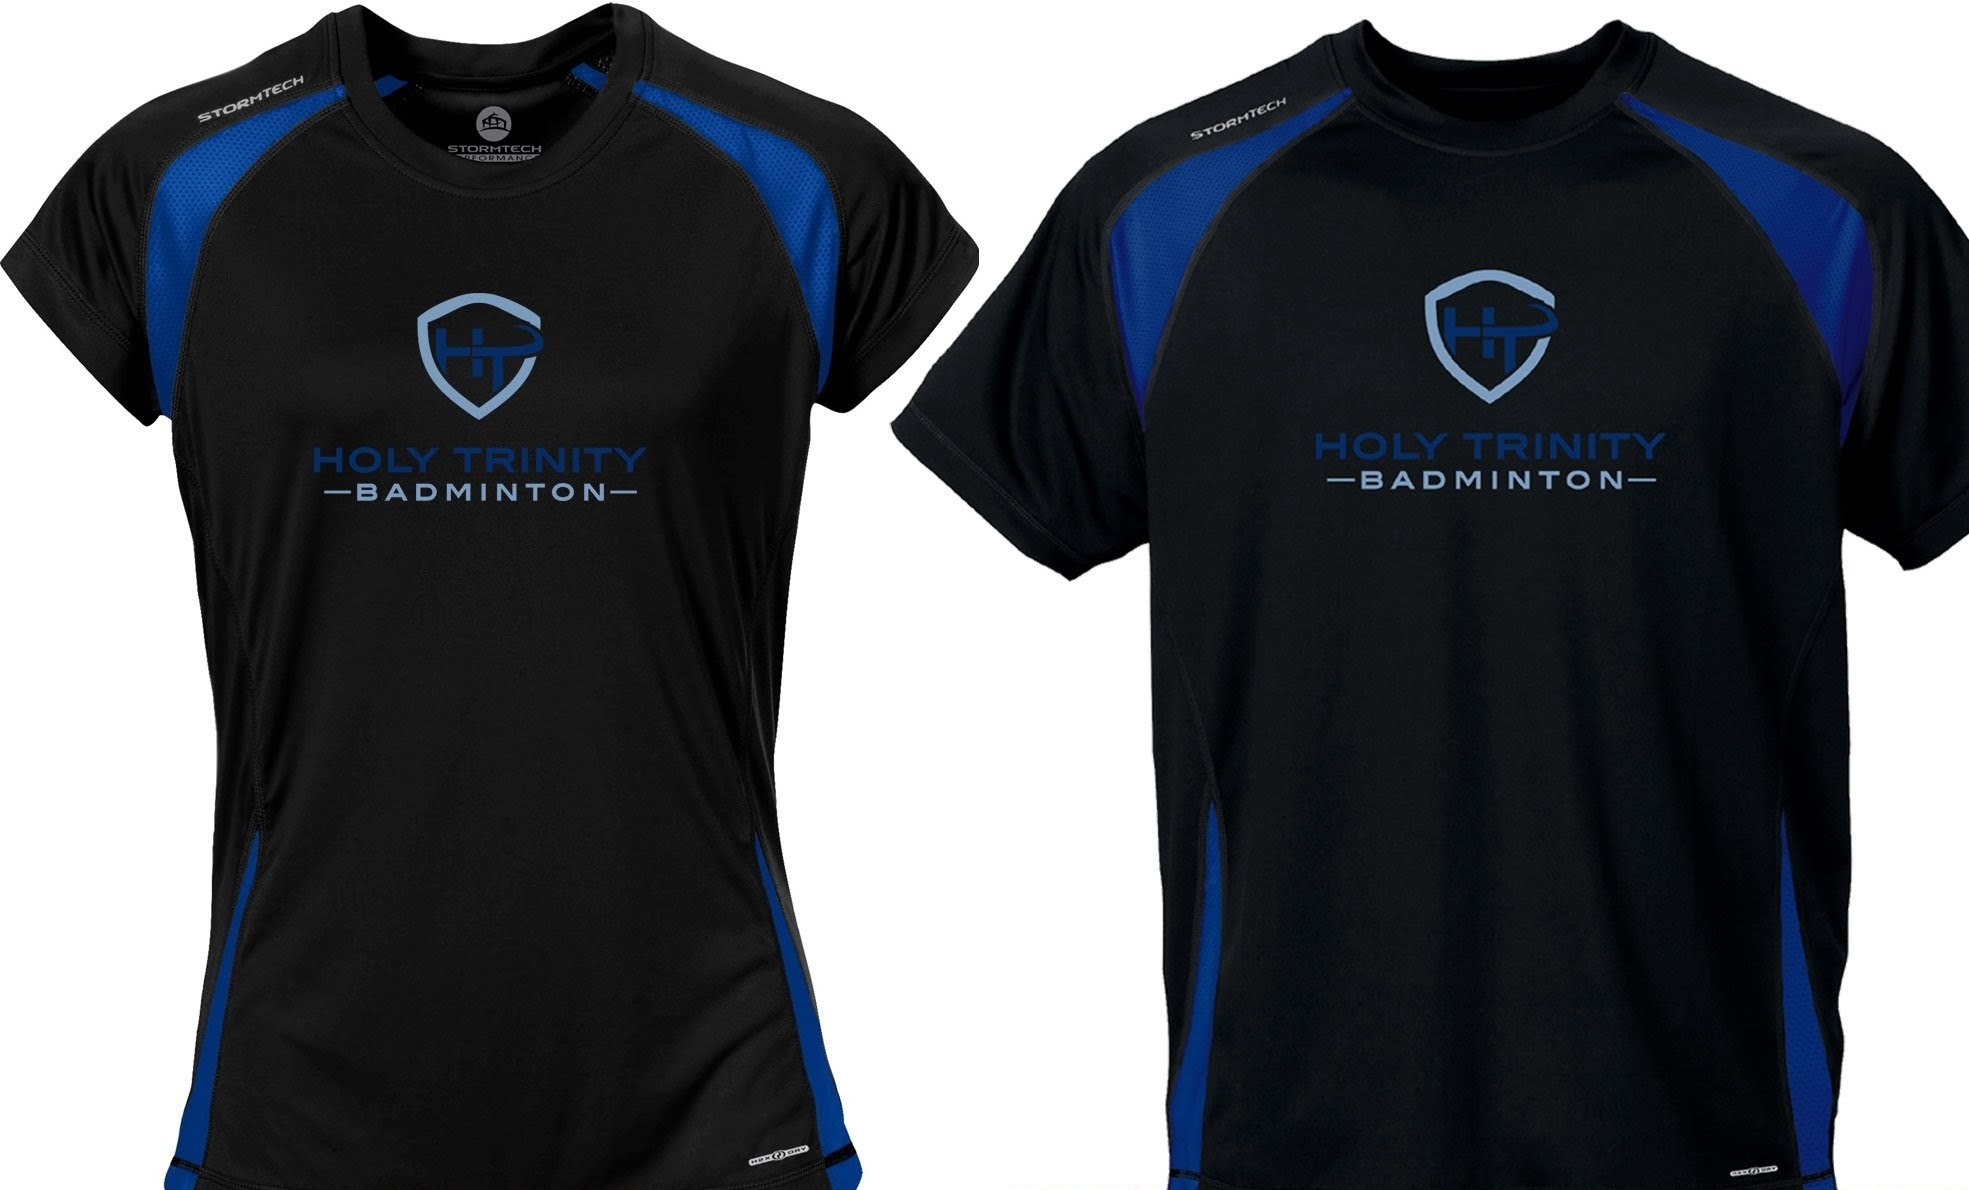 Design t shirt badminton -  Great Badminton Shirt What Makes A Great Shirt Design And So Much More We Believe You Will Love Wearing Your Htbc Shirt Take A Look And Let Us Know